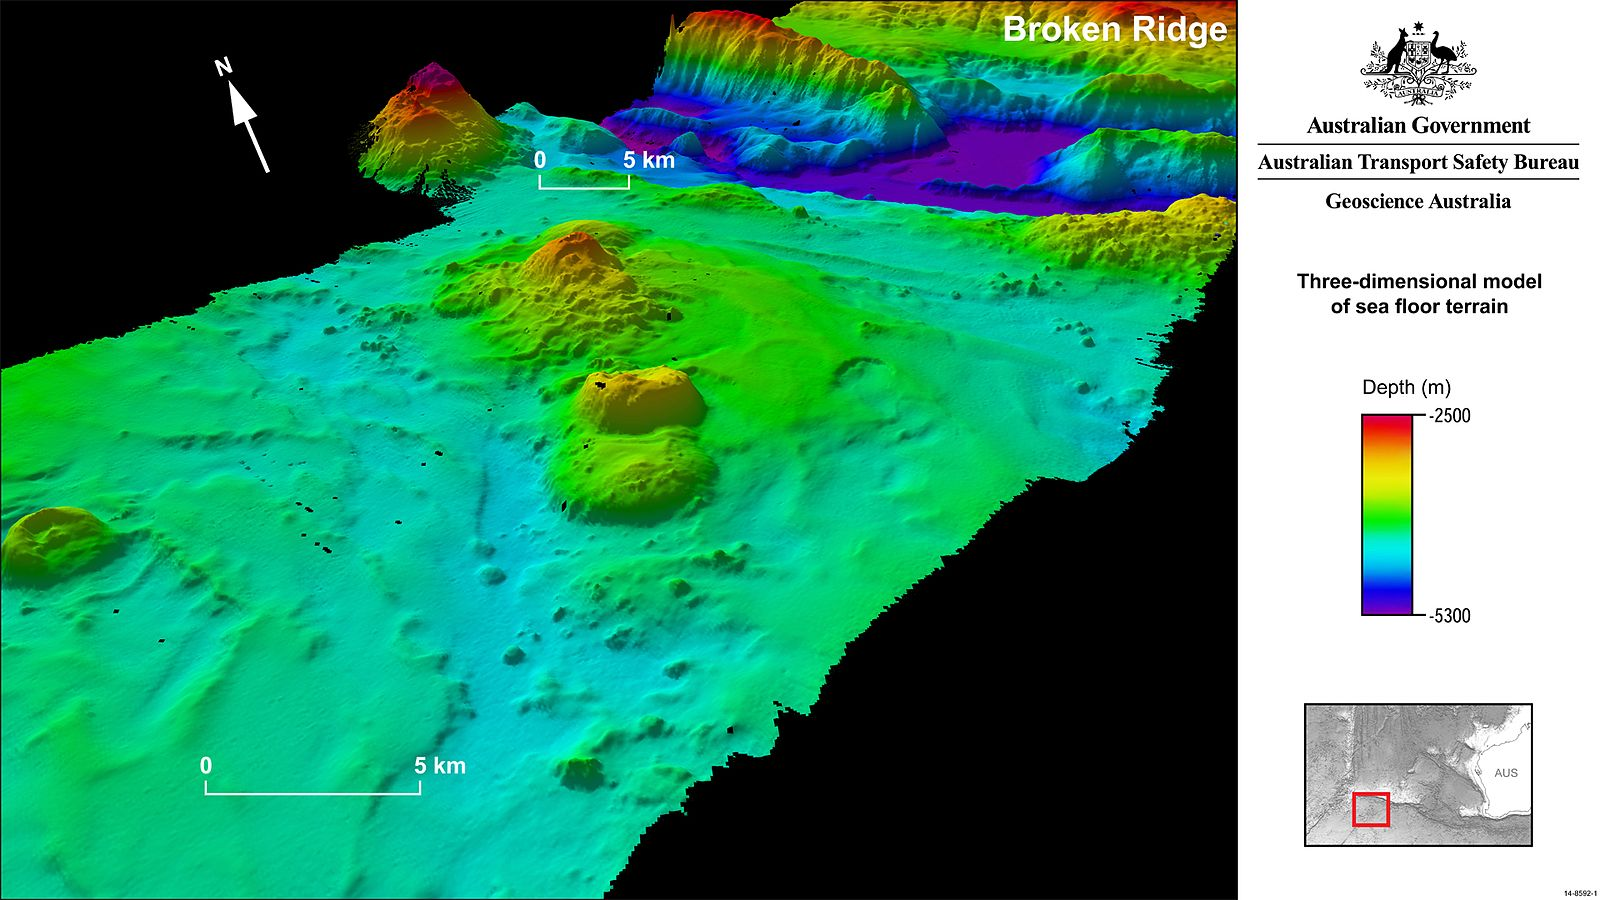 A color coded 3D model of the ocean floor